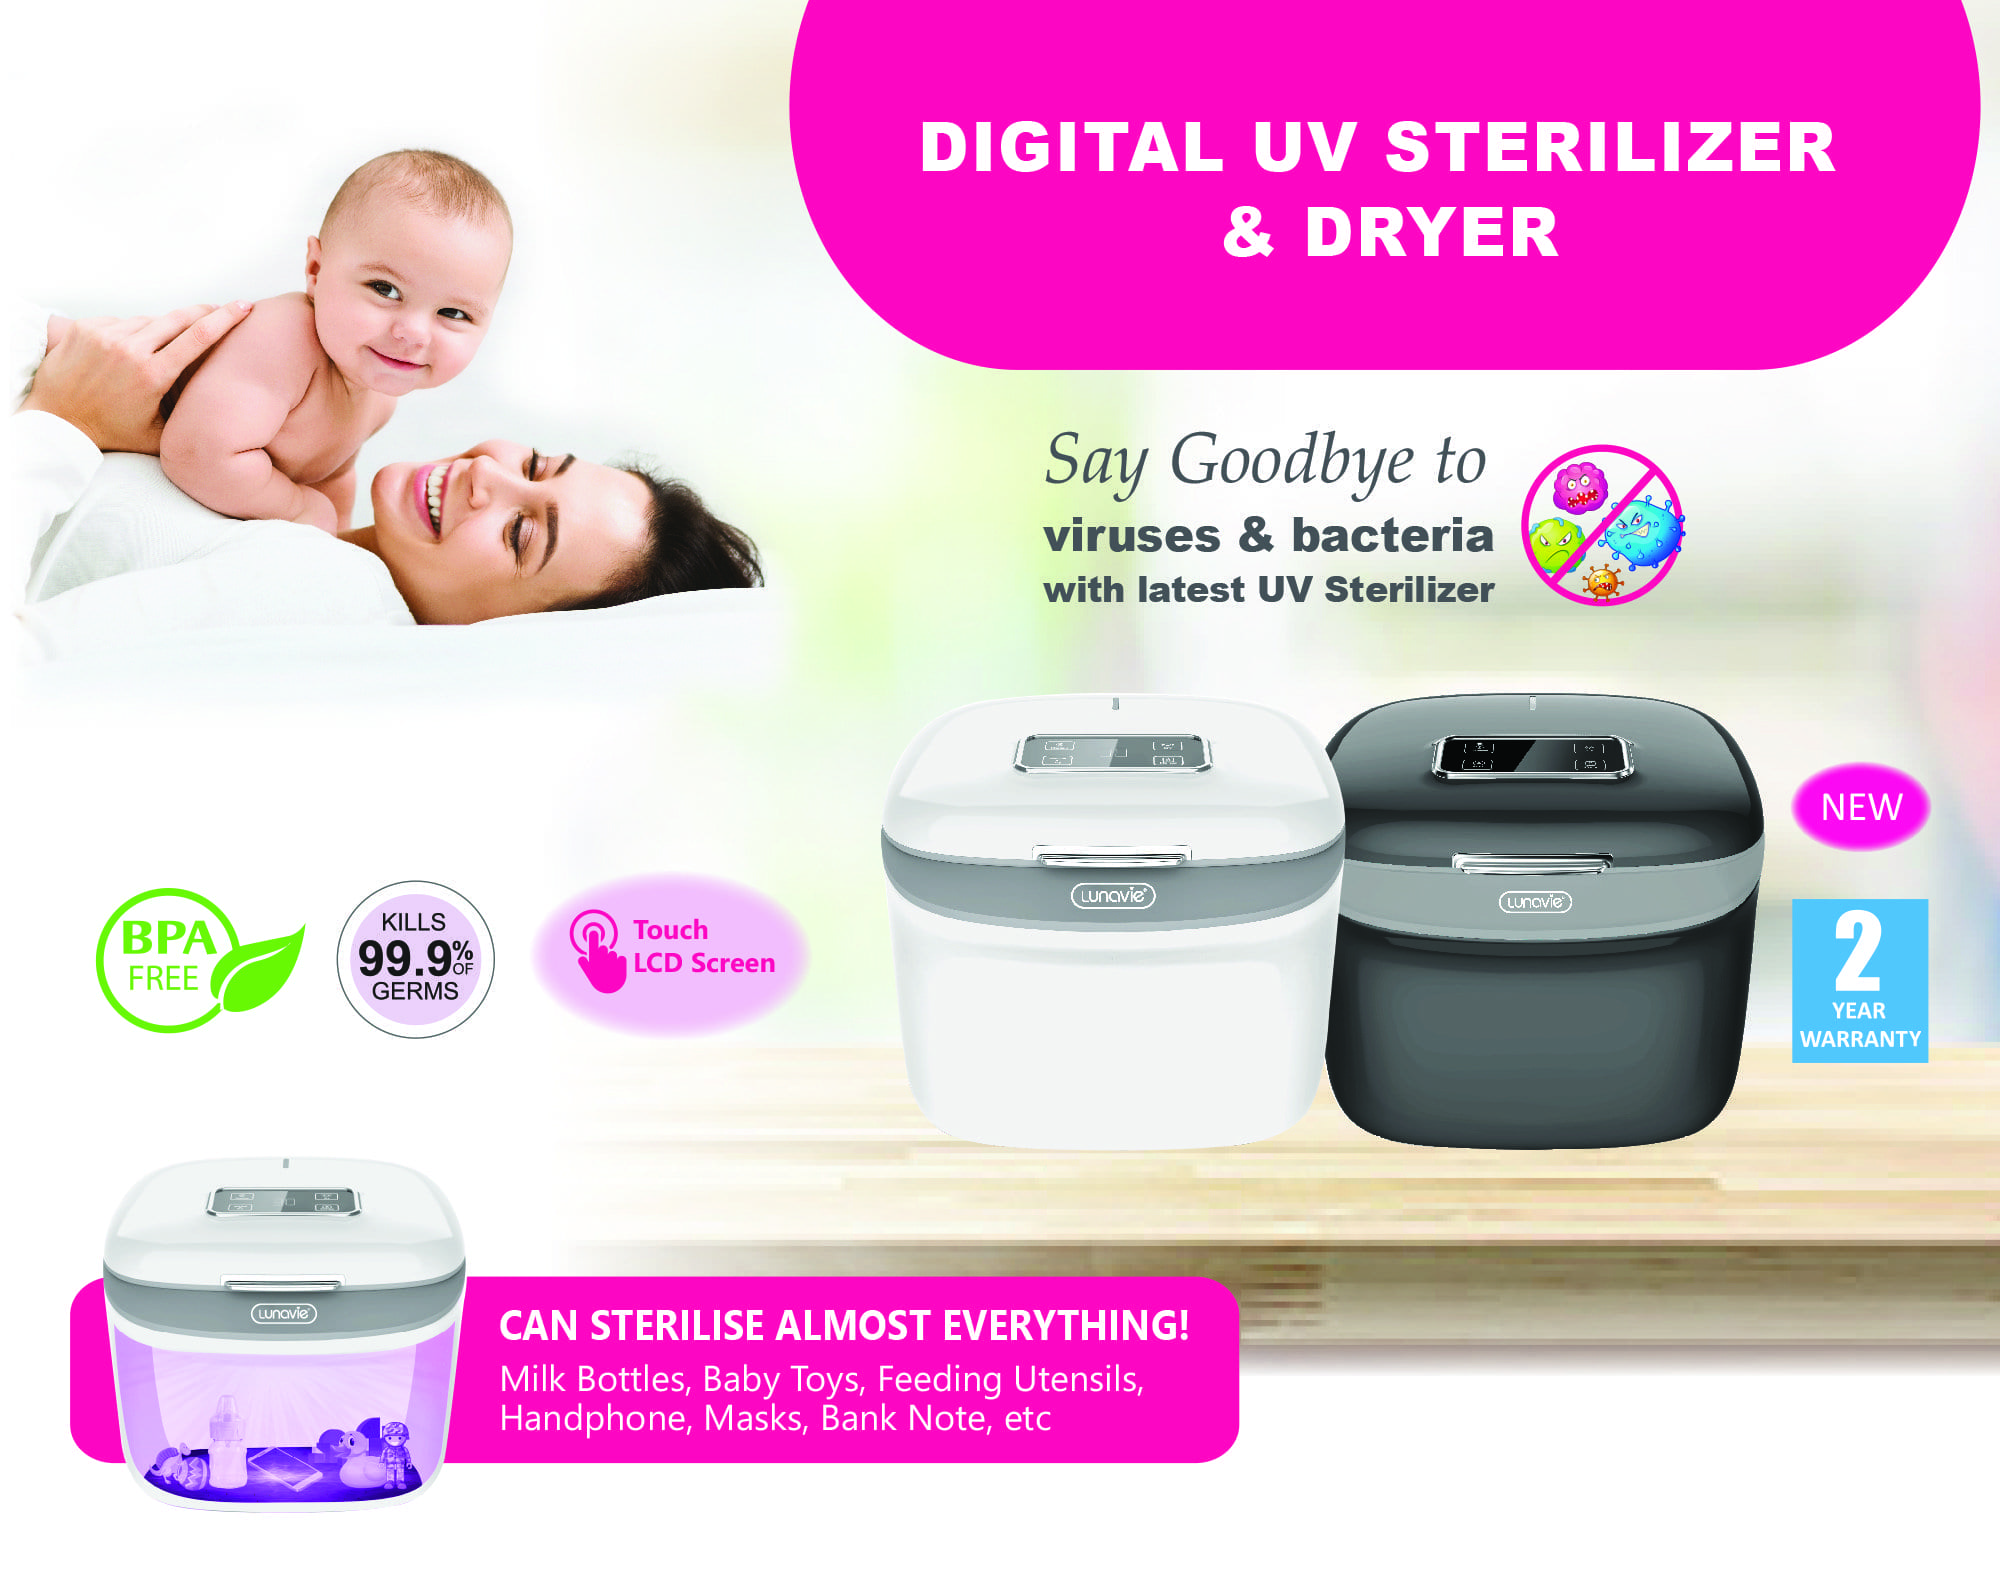 digital uv sterilizer & dryer